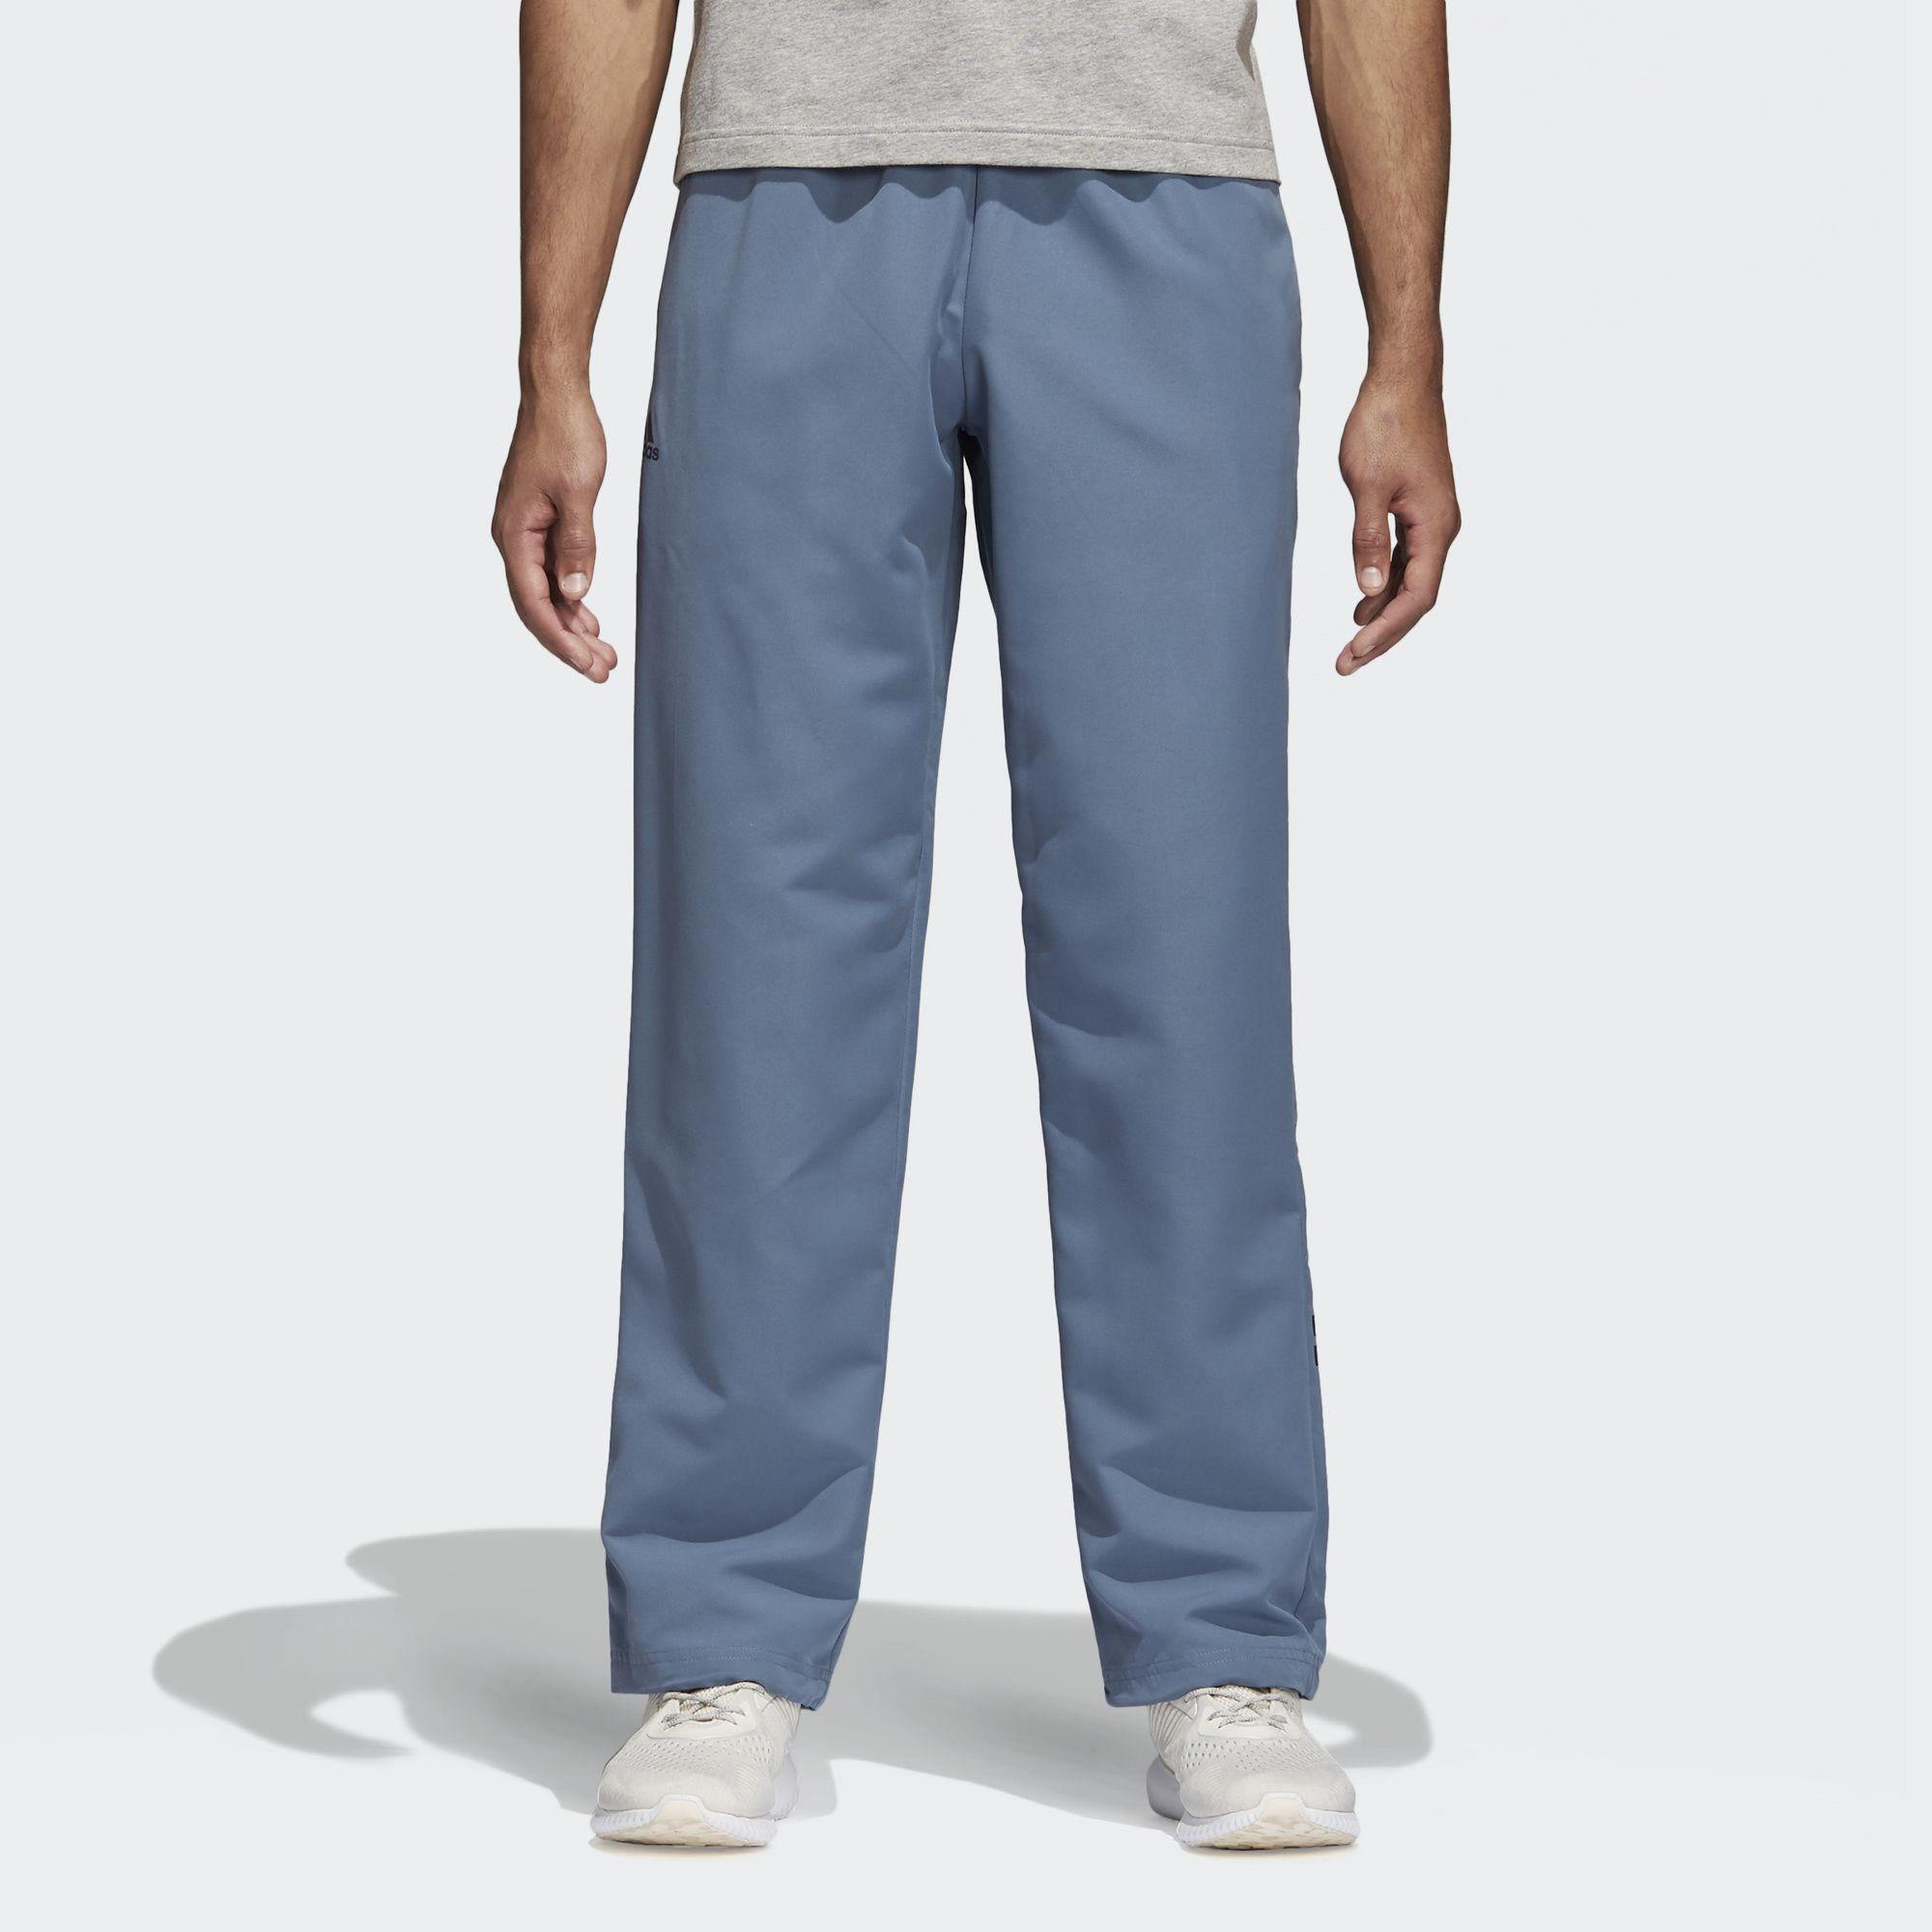 a8f7962d06c7 adidas Essentials Linear Stanford Pants in Blue for Men - Lyst